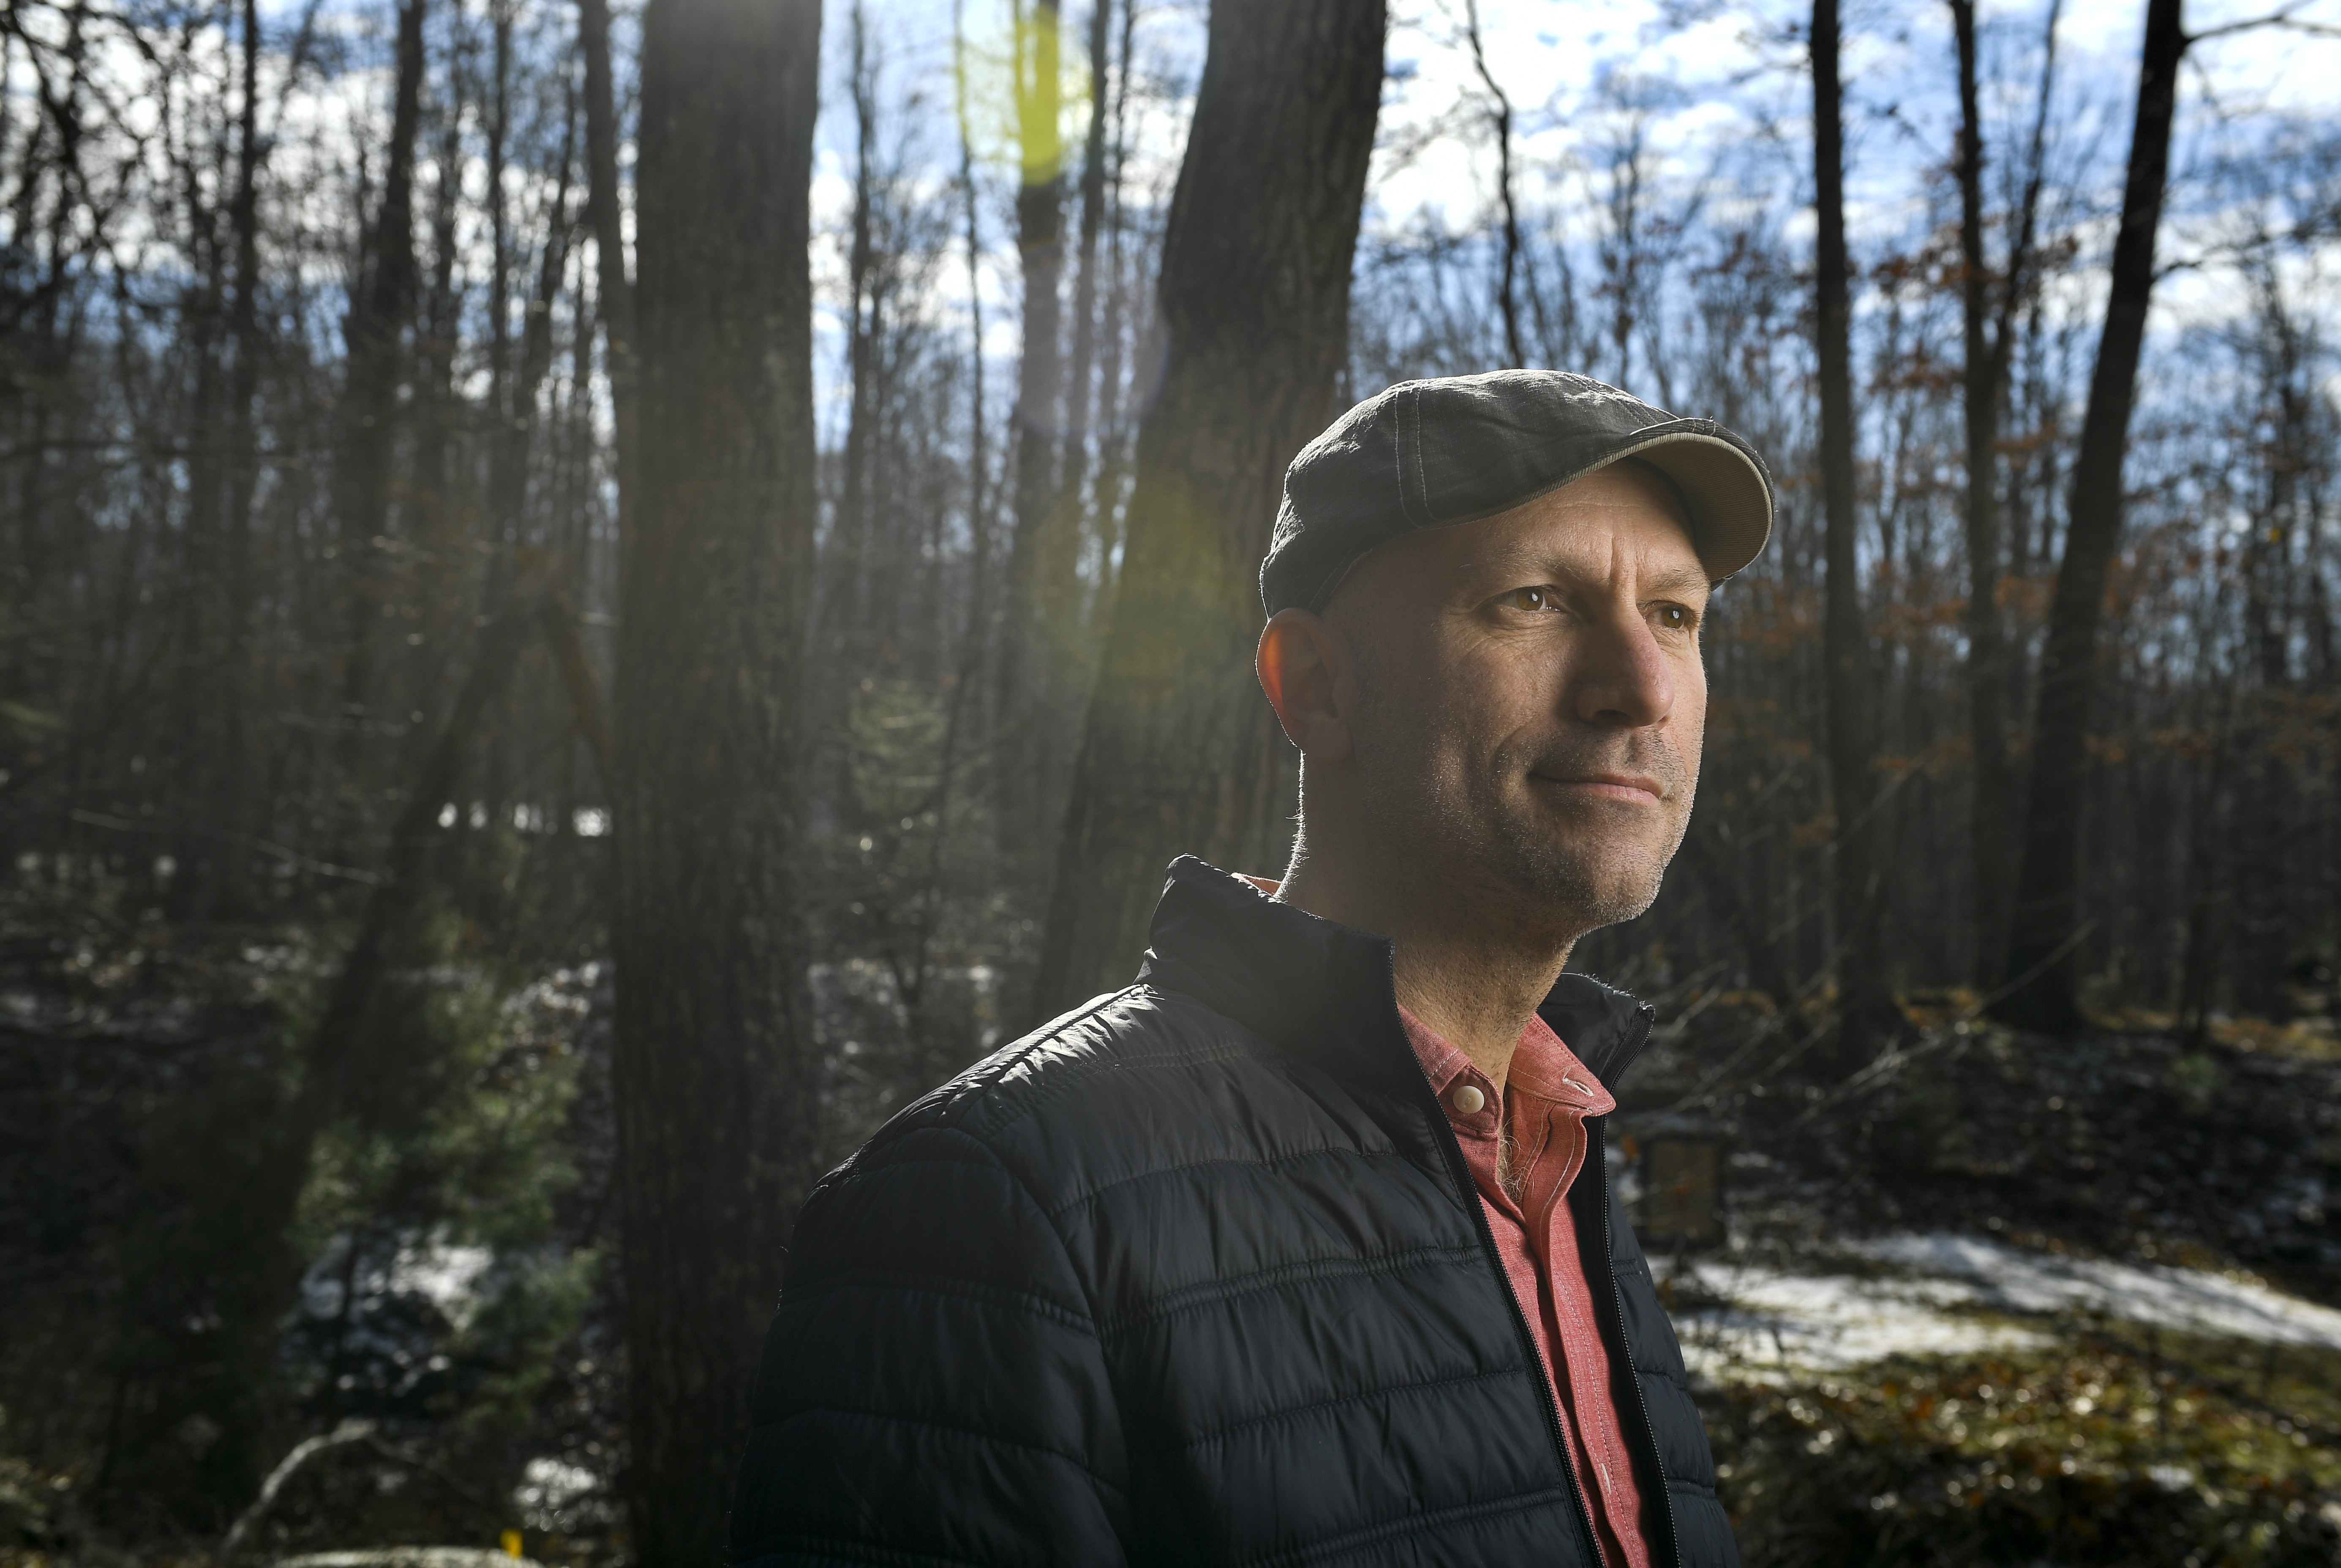 In West Virginia Joe Kapp had a new mission, but as he initially saw it, it was simply an extension of his previous work helping LGBTQ couples and businesses find financial security. MUST CREDIT: Washington Post photo by Ricky Carioti